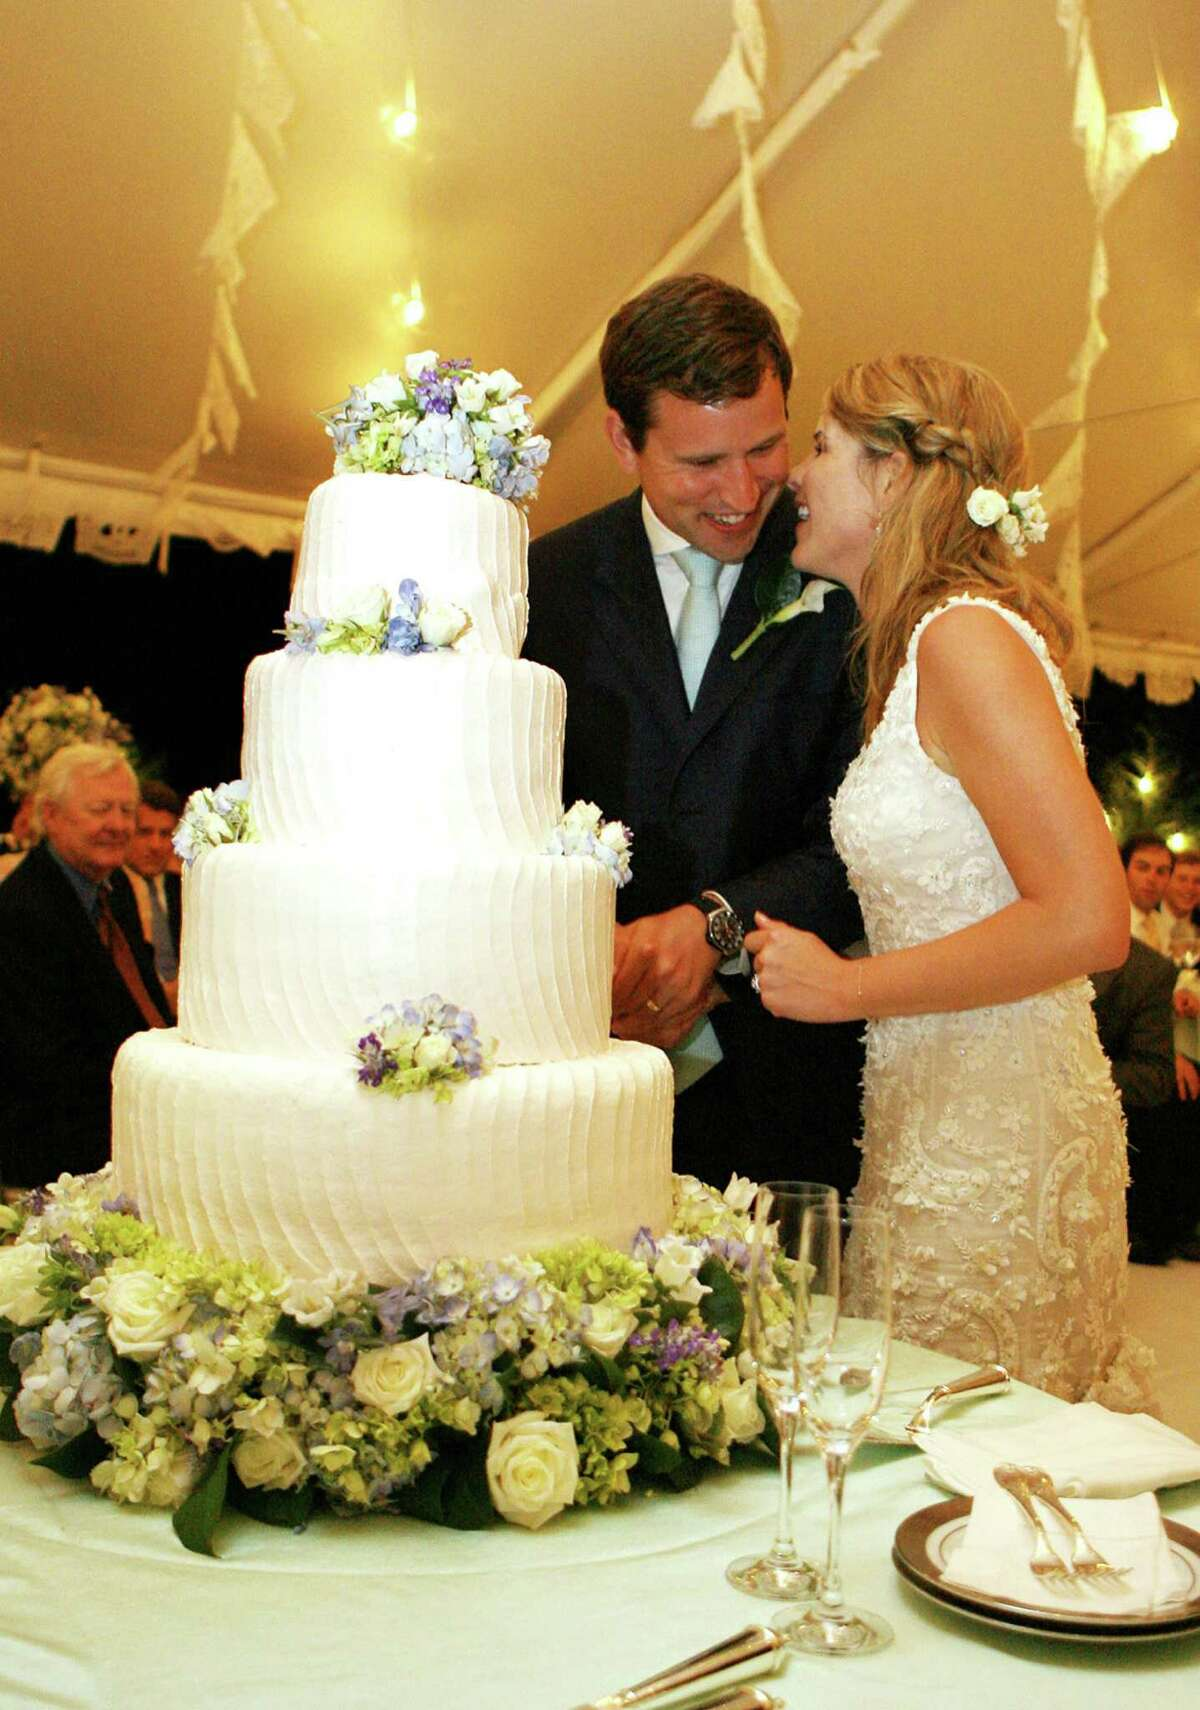 FILE - DECEMBER 11: According to reports, Jenna Bush Hager, daughter of former U.S. President George W. Bush, is pregnant with her first child. CRAWFORD, TX - MAY 10: In this handout image provided by the White House, Henry and Jenna Hager pause as they cut their wedding cake during a reception in their honor following the ceremony at Prairie Chapel Ranch May 10, 2008 near Crawford, Texas.